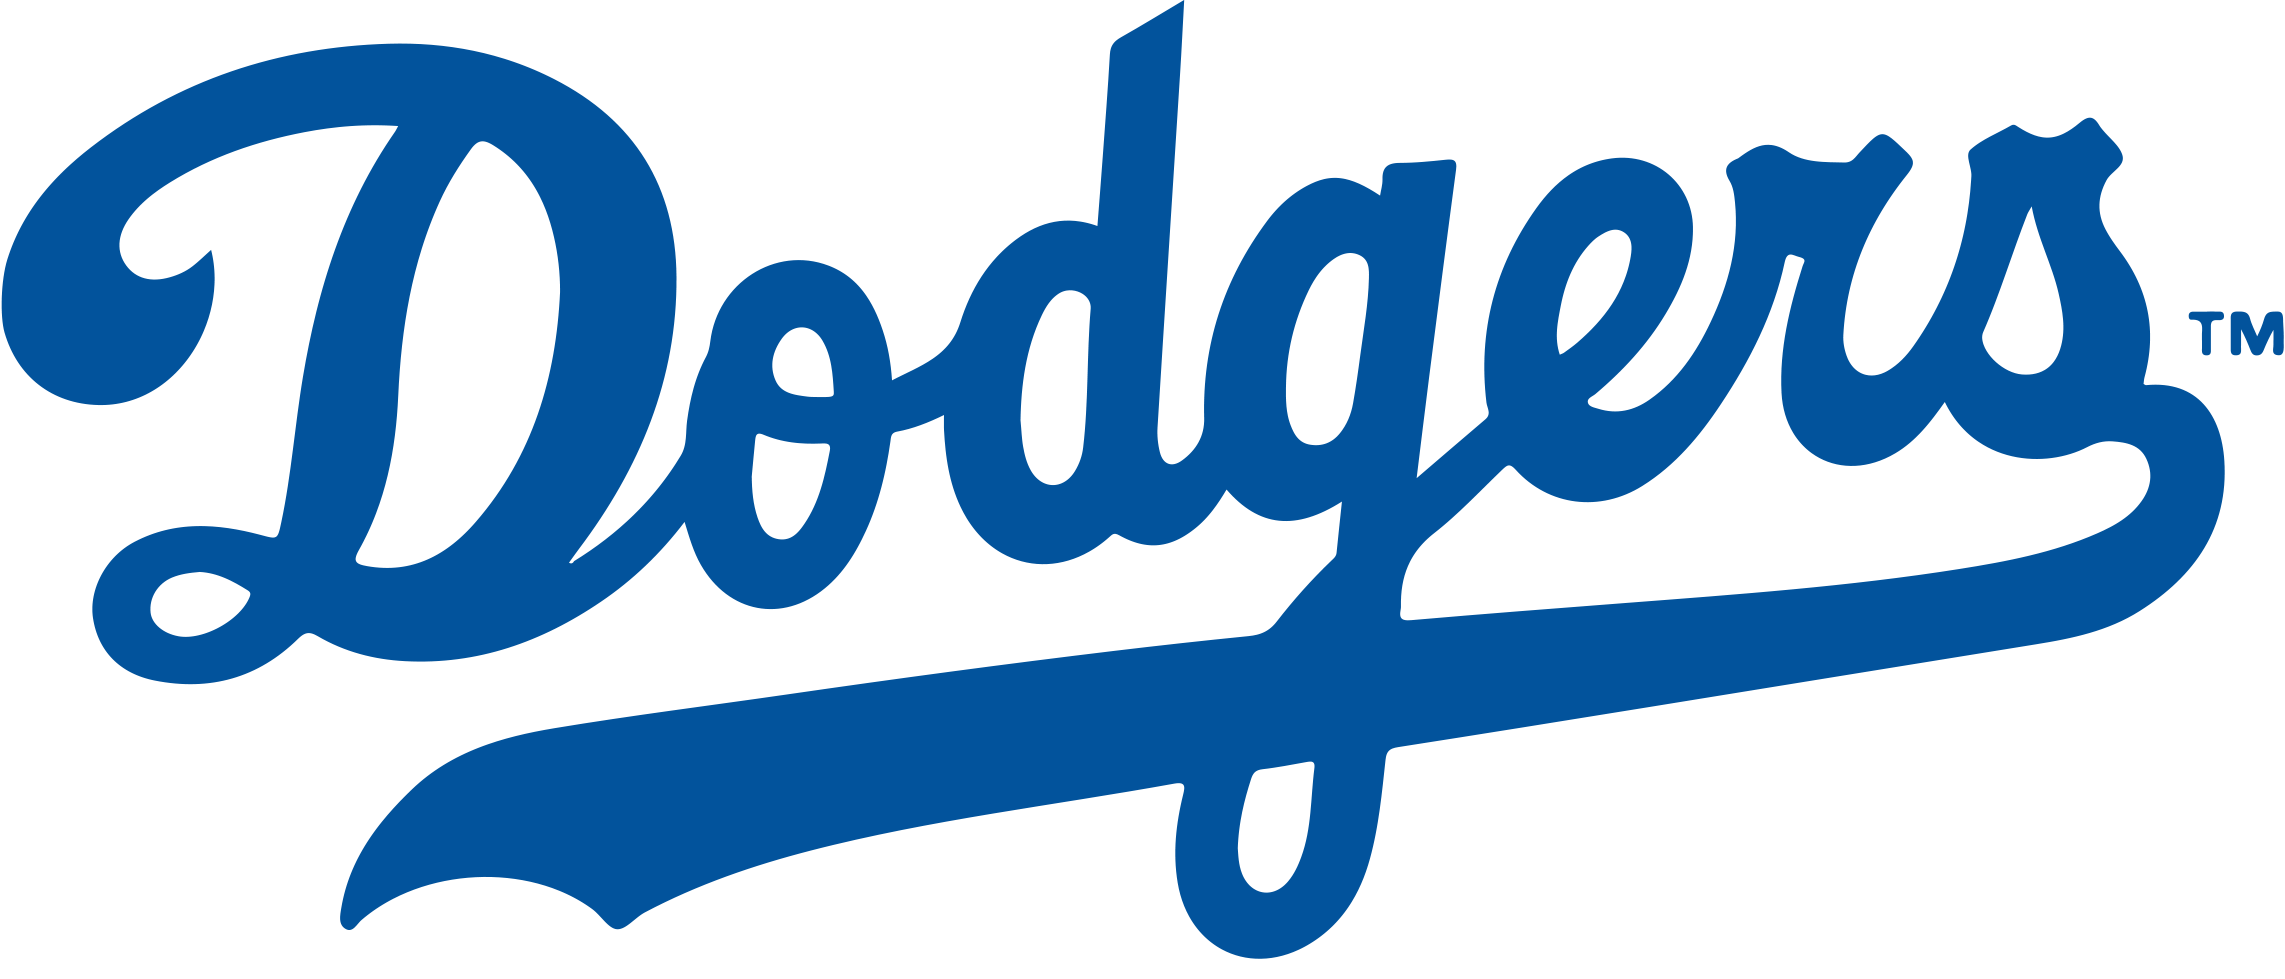 Baseball clipart free la dodgers picture black and white library Brooklyn Los Angeles Dodgers Chicago Cubs MLB Logo - new 2285*979 ... picture black and white library